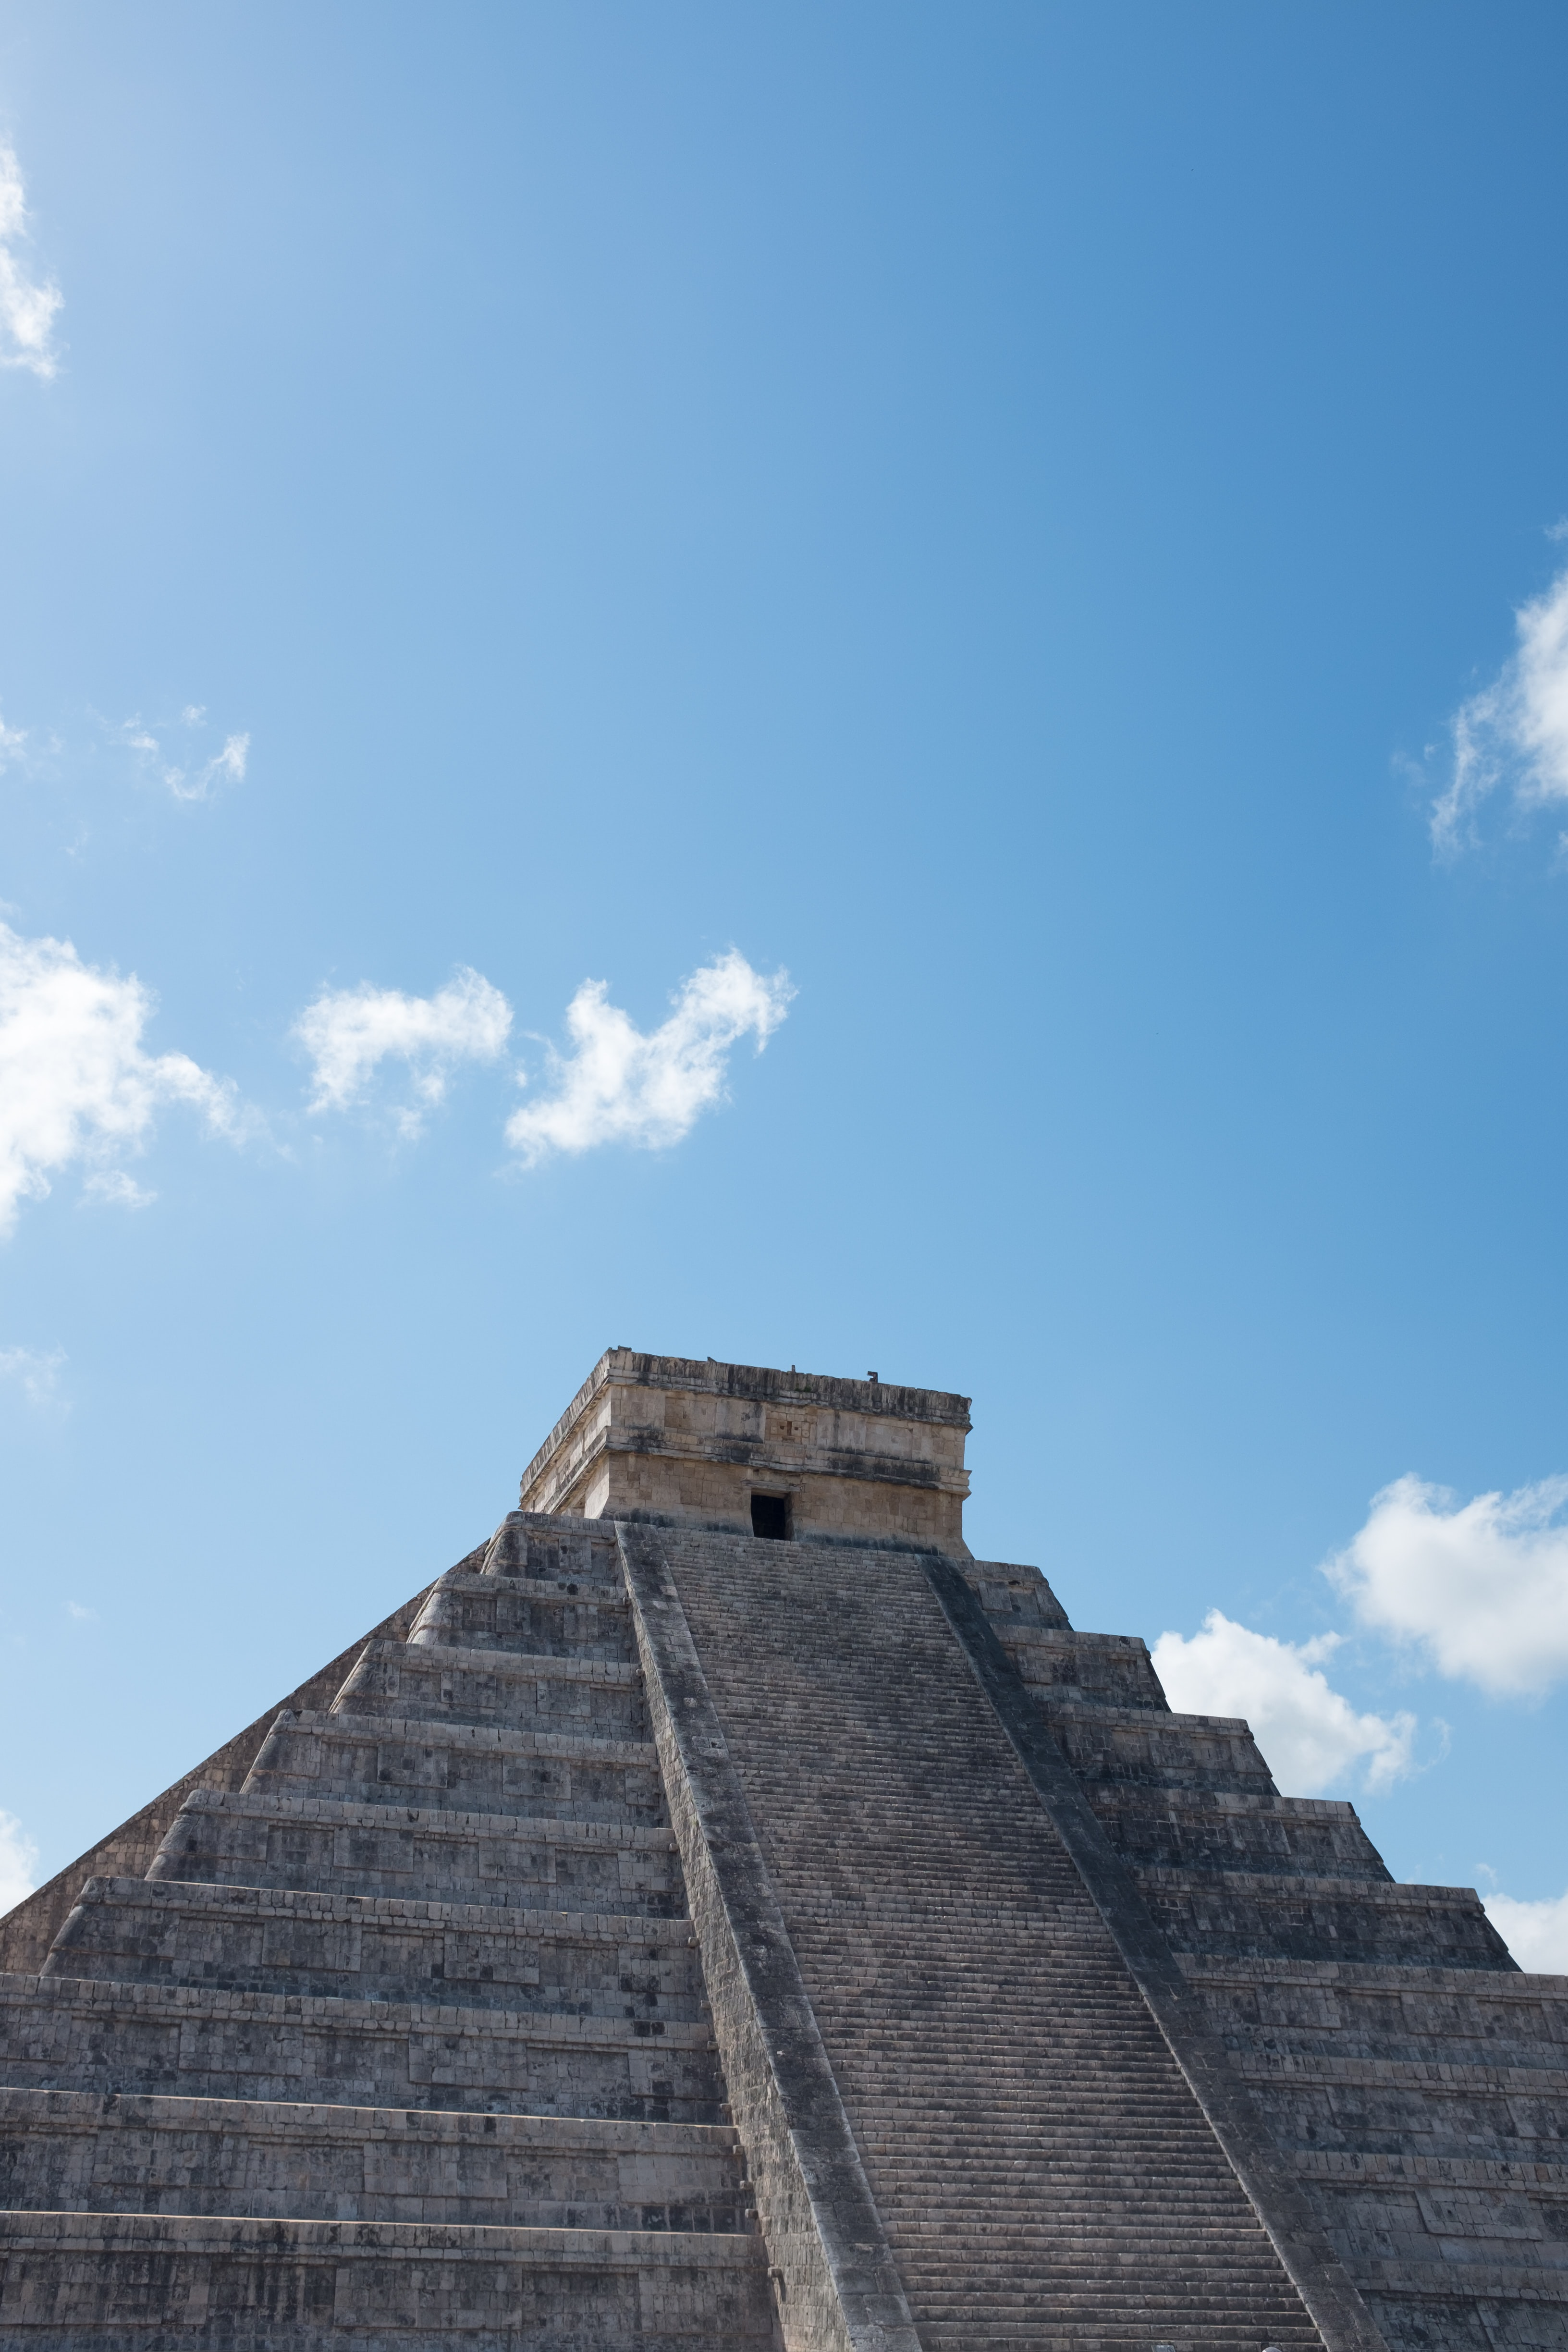 Mayan temple during daytime photography